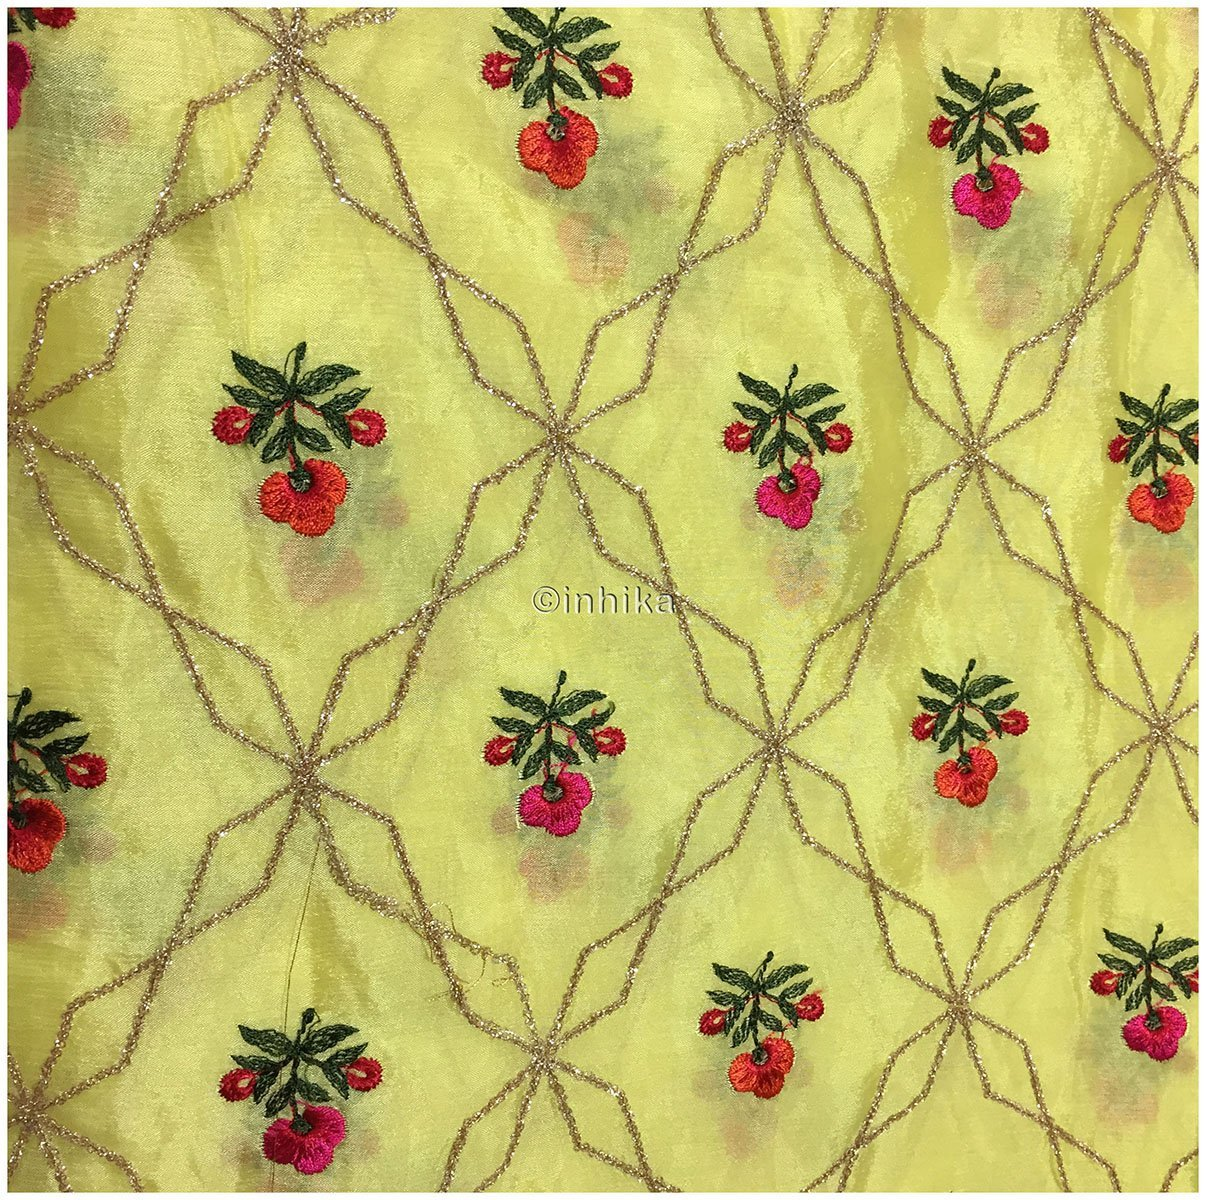 6356f9594e ... embroidery cloth white lace fabric online india Embroidery Chiffon  Yellow, Pink, Light Gold, · embroidery blouse ...